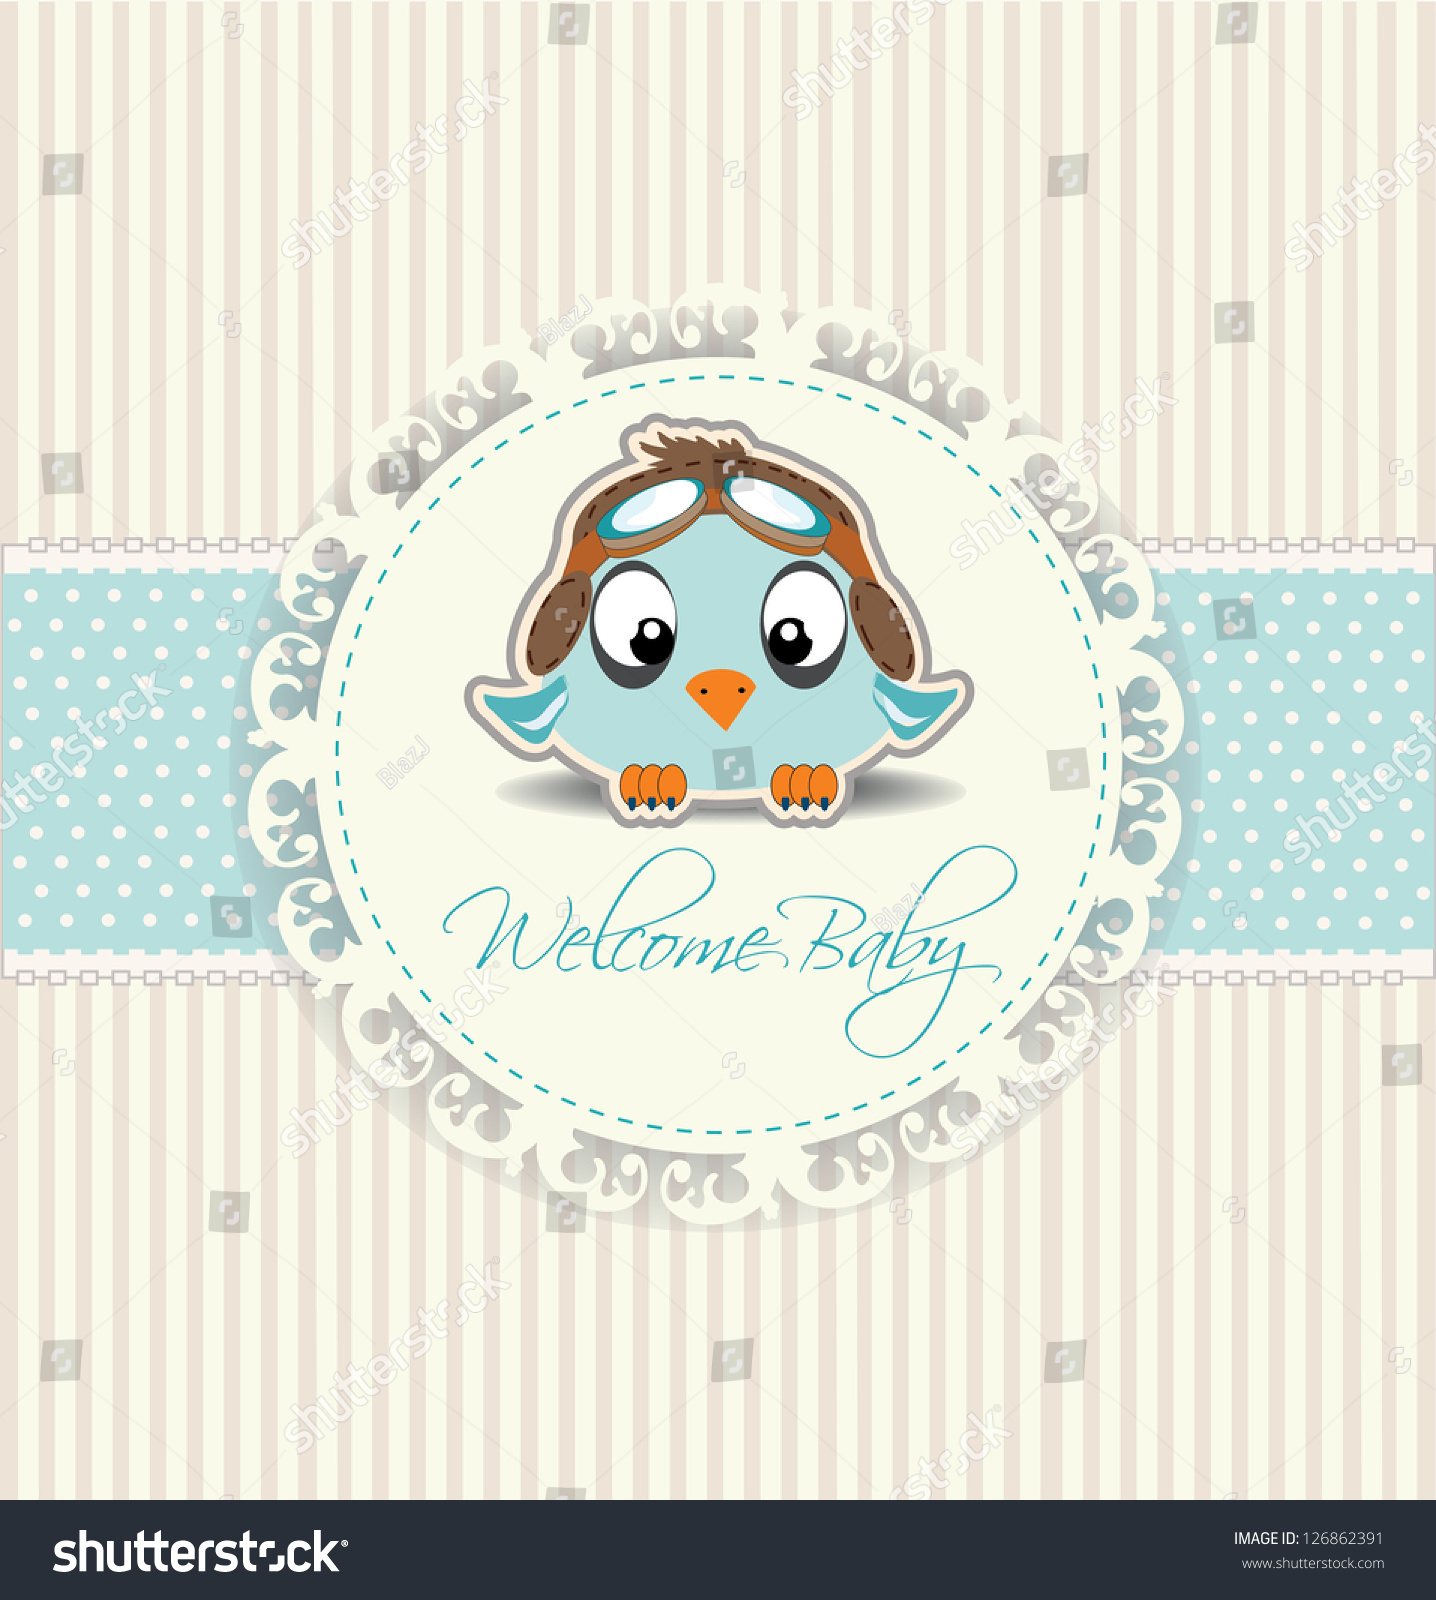 New Welcome Baby Boy Card Stock Vector 126862391 - Shutterstock